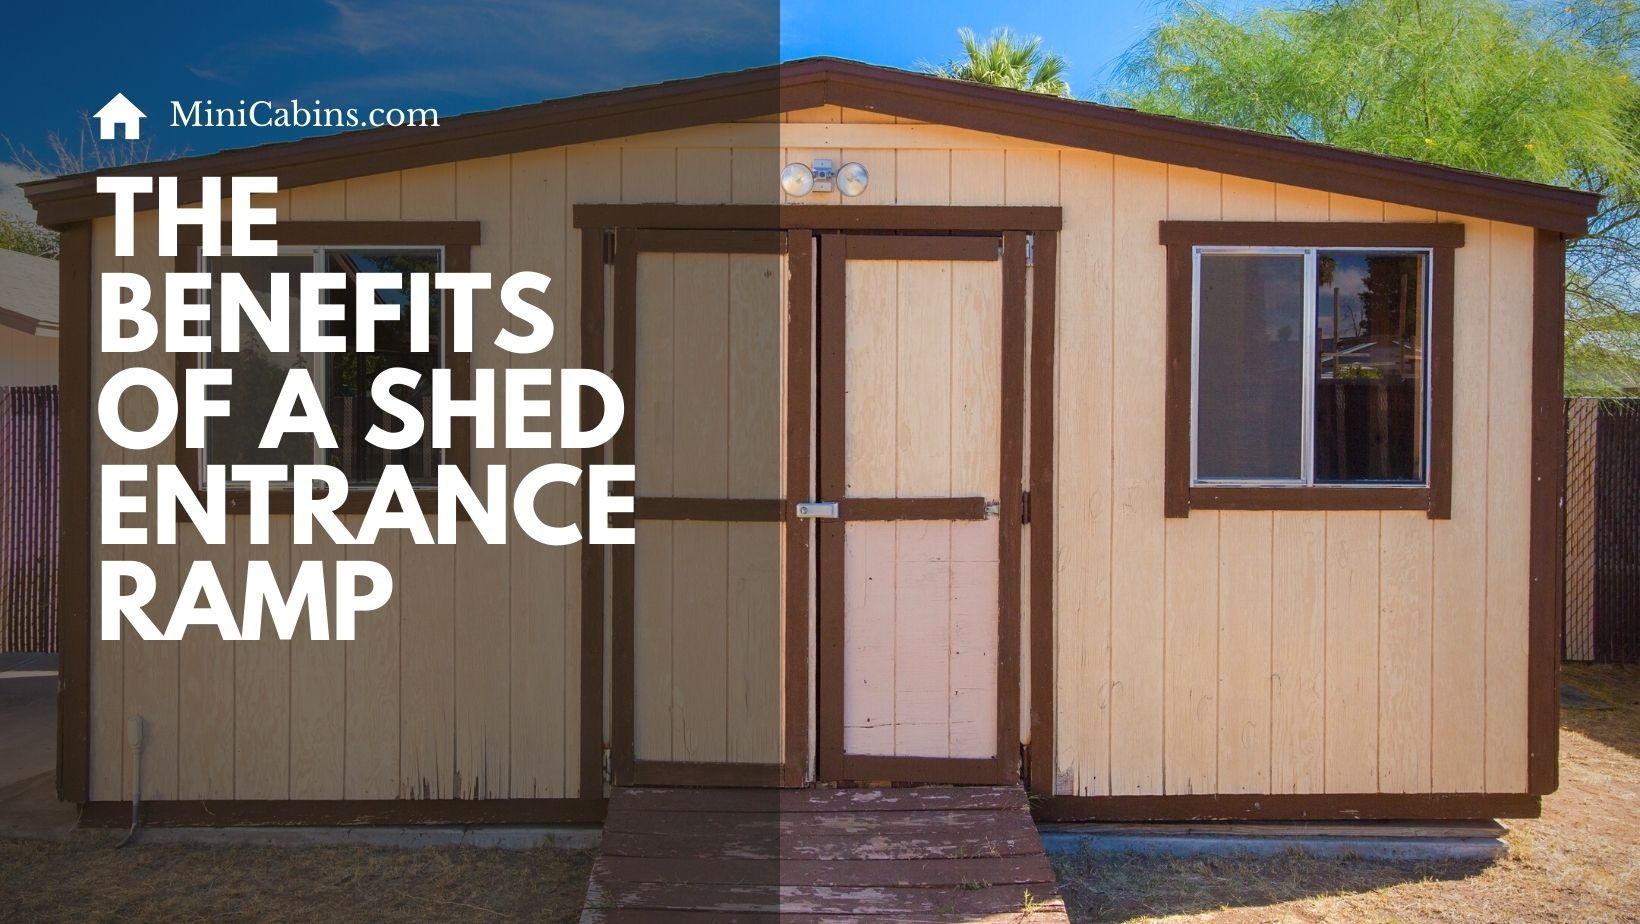 The Benefits of a Shed Entrance Ramp